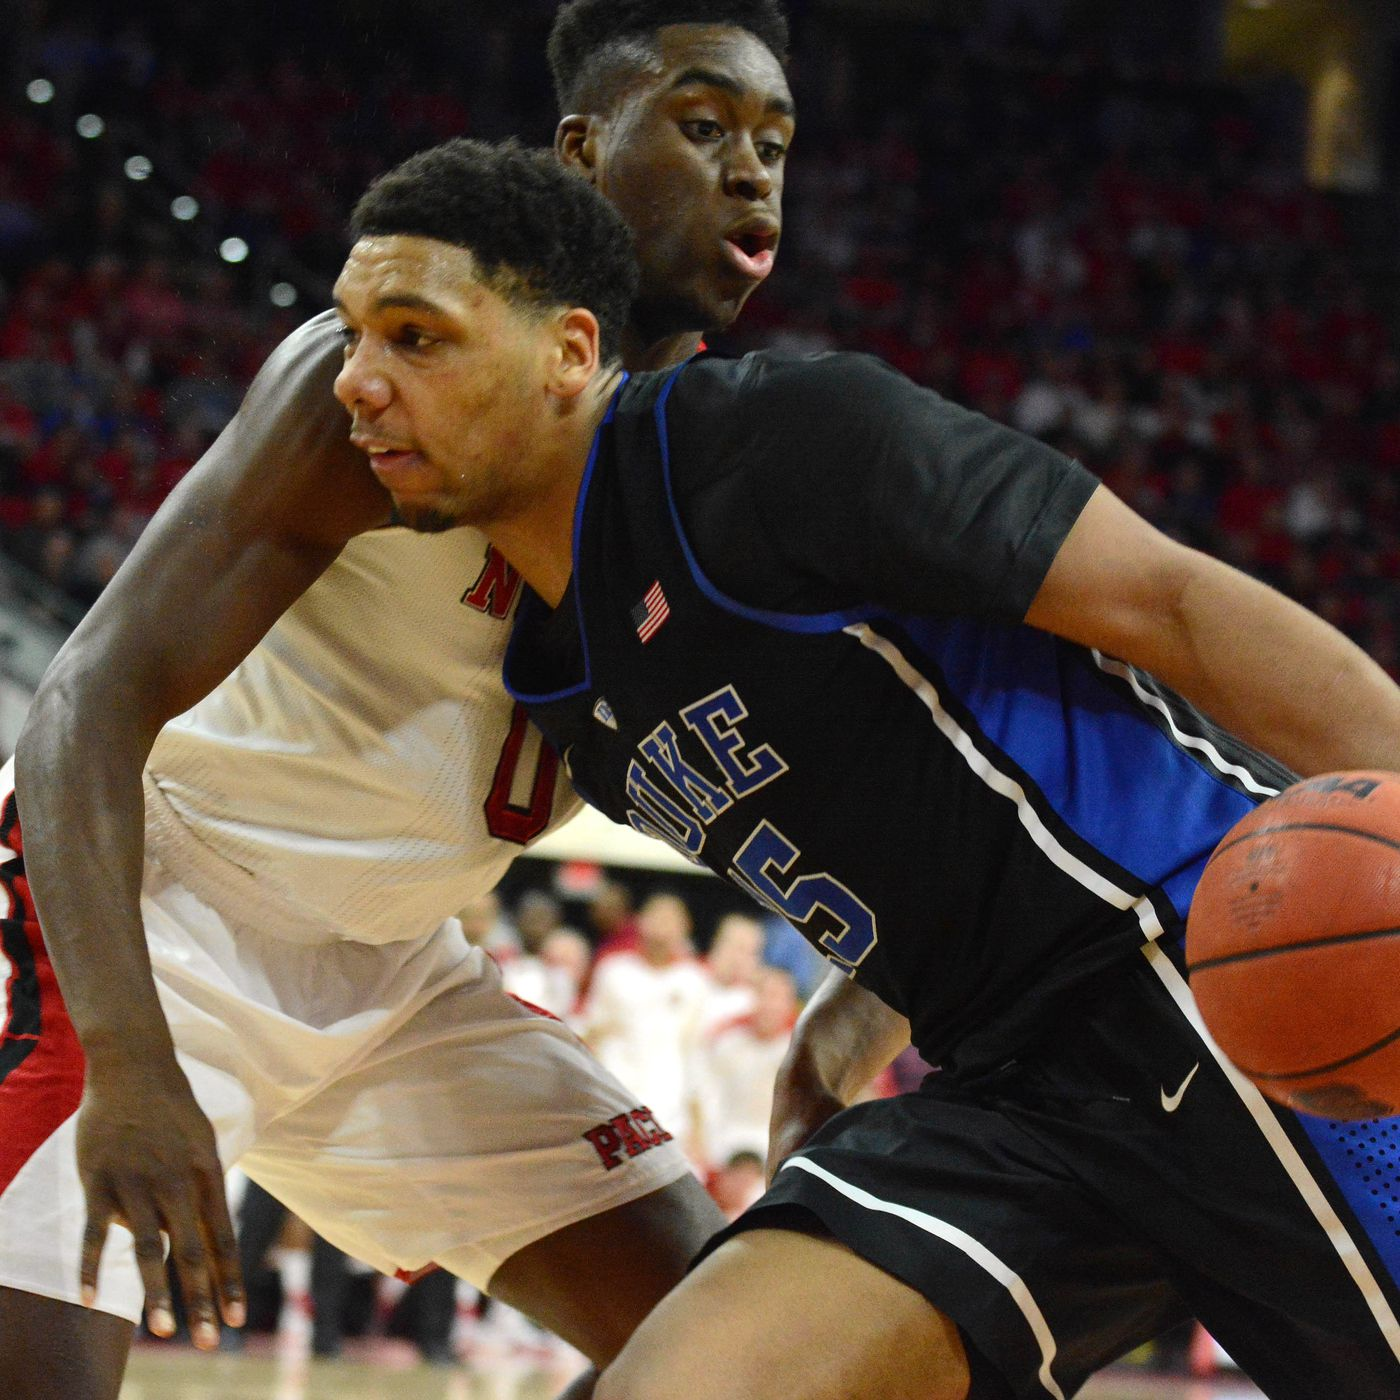 Jahlil Okafor is an elite NBA prospect on only half the court